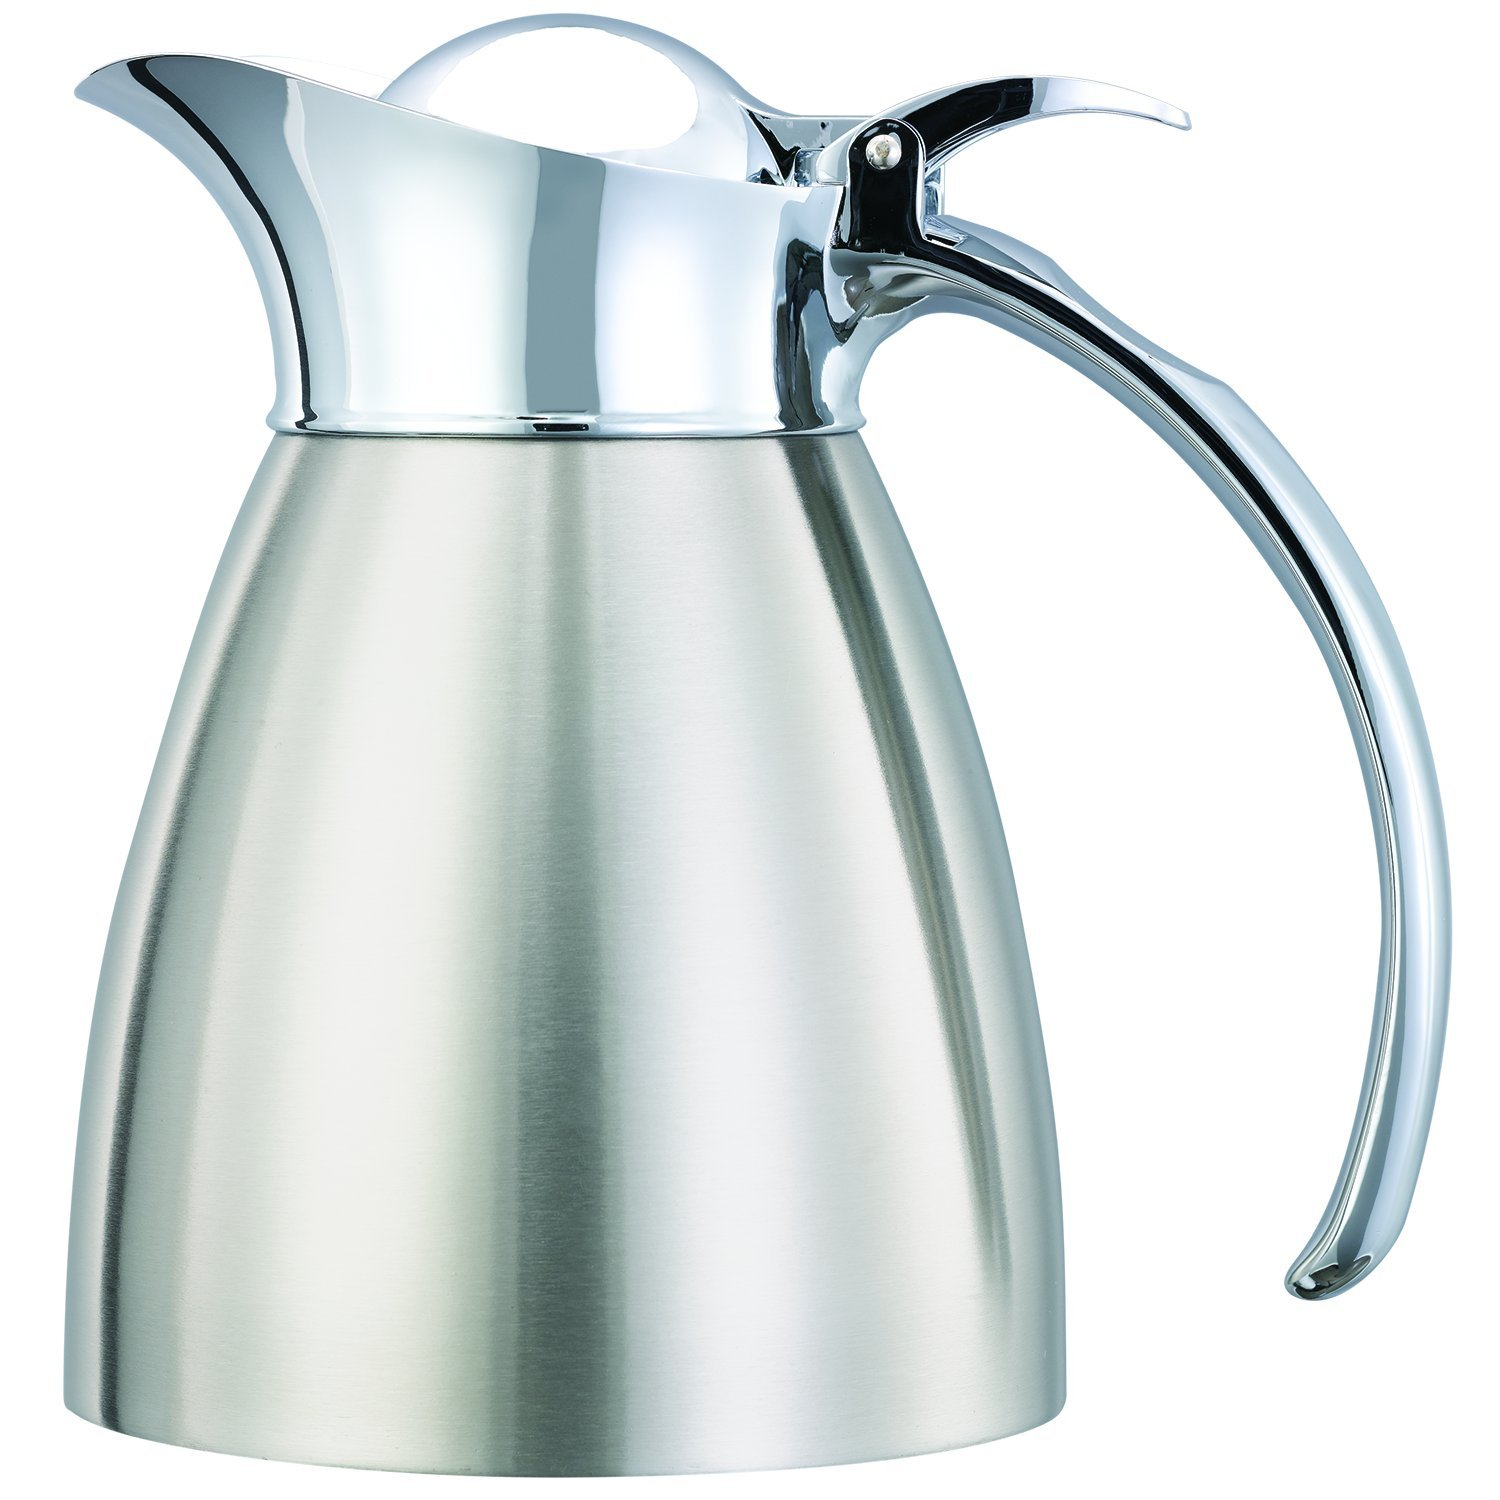 Service Ideas 98203BS Carafe, Stainless Steel Lined, Brushed Exterior, 0.3 L